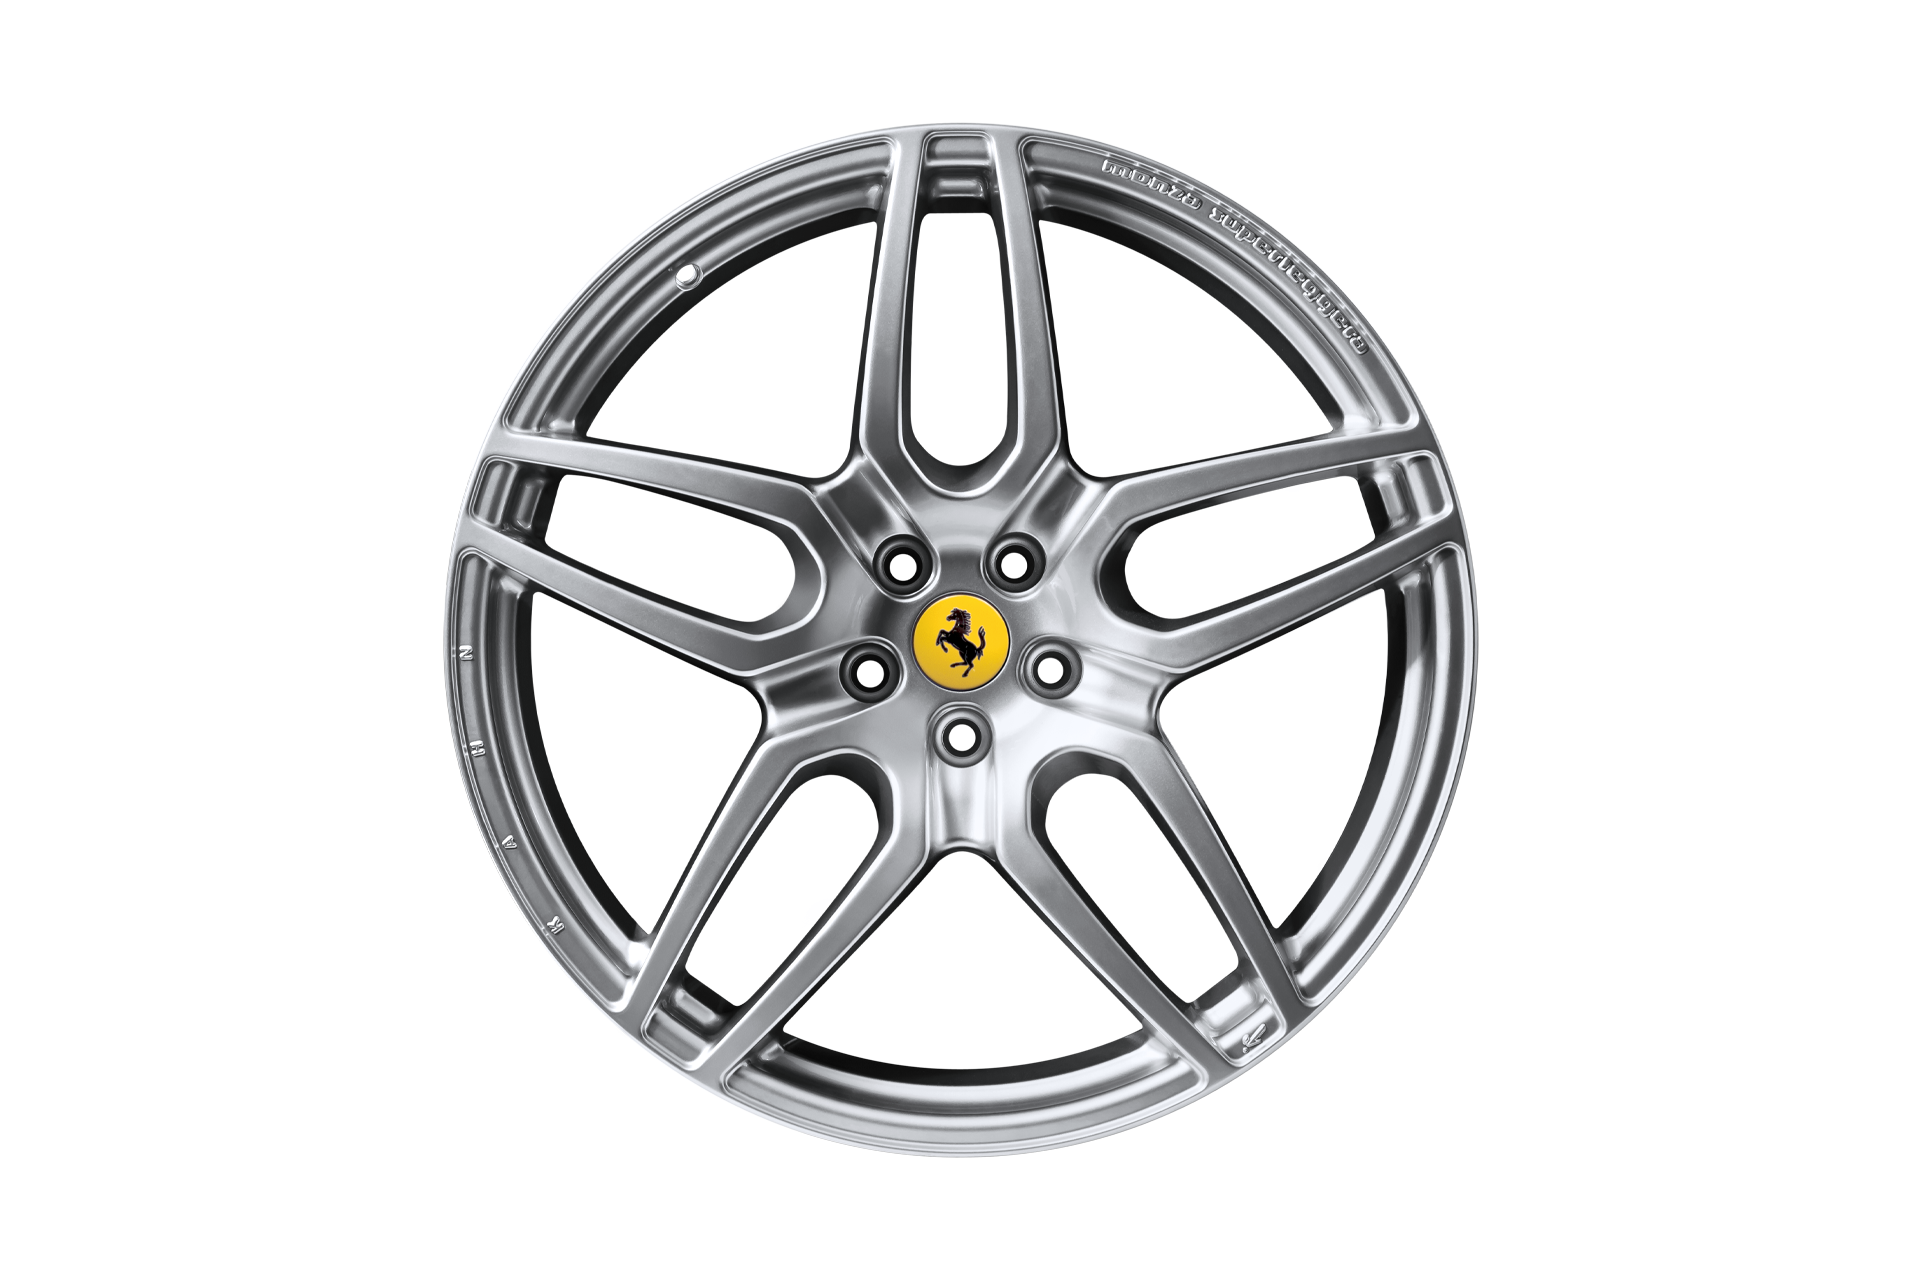 Ferrari 612 Monza Superleggera Light Alloy Wheels by Kahn - Image 4146